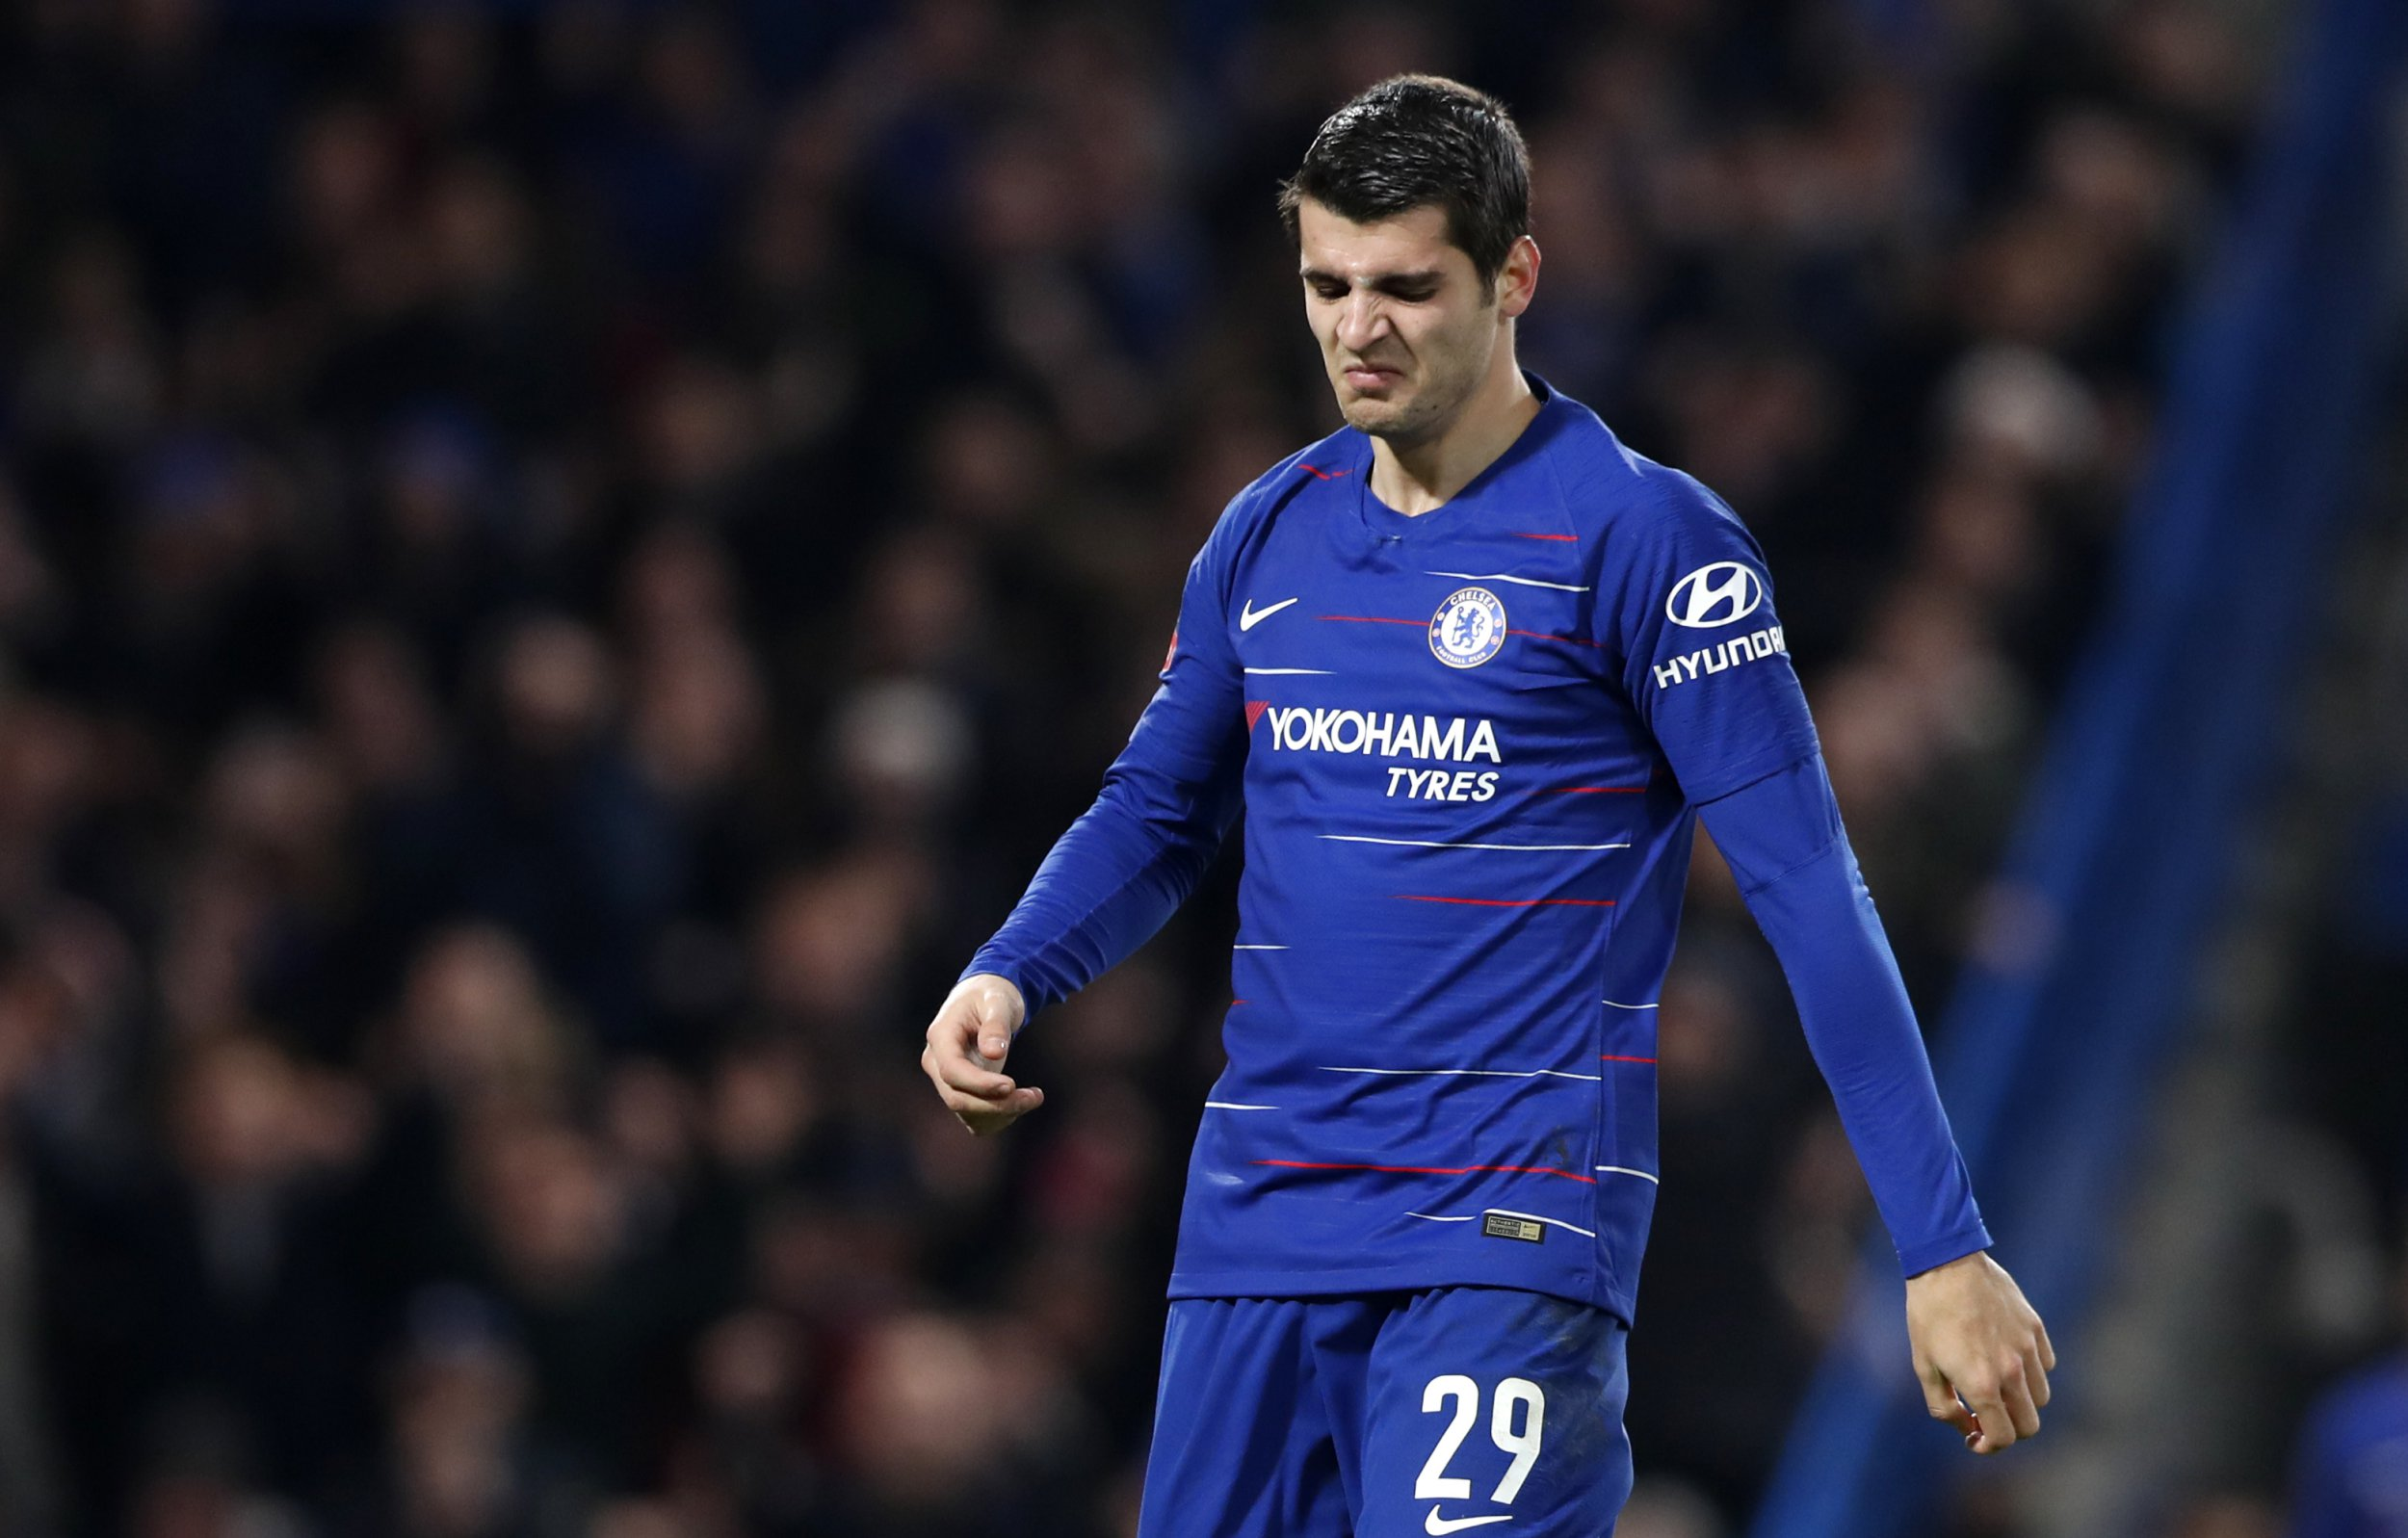 Why Alvaro Morata refused to celebrate after scoring against Nottingham Forest